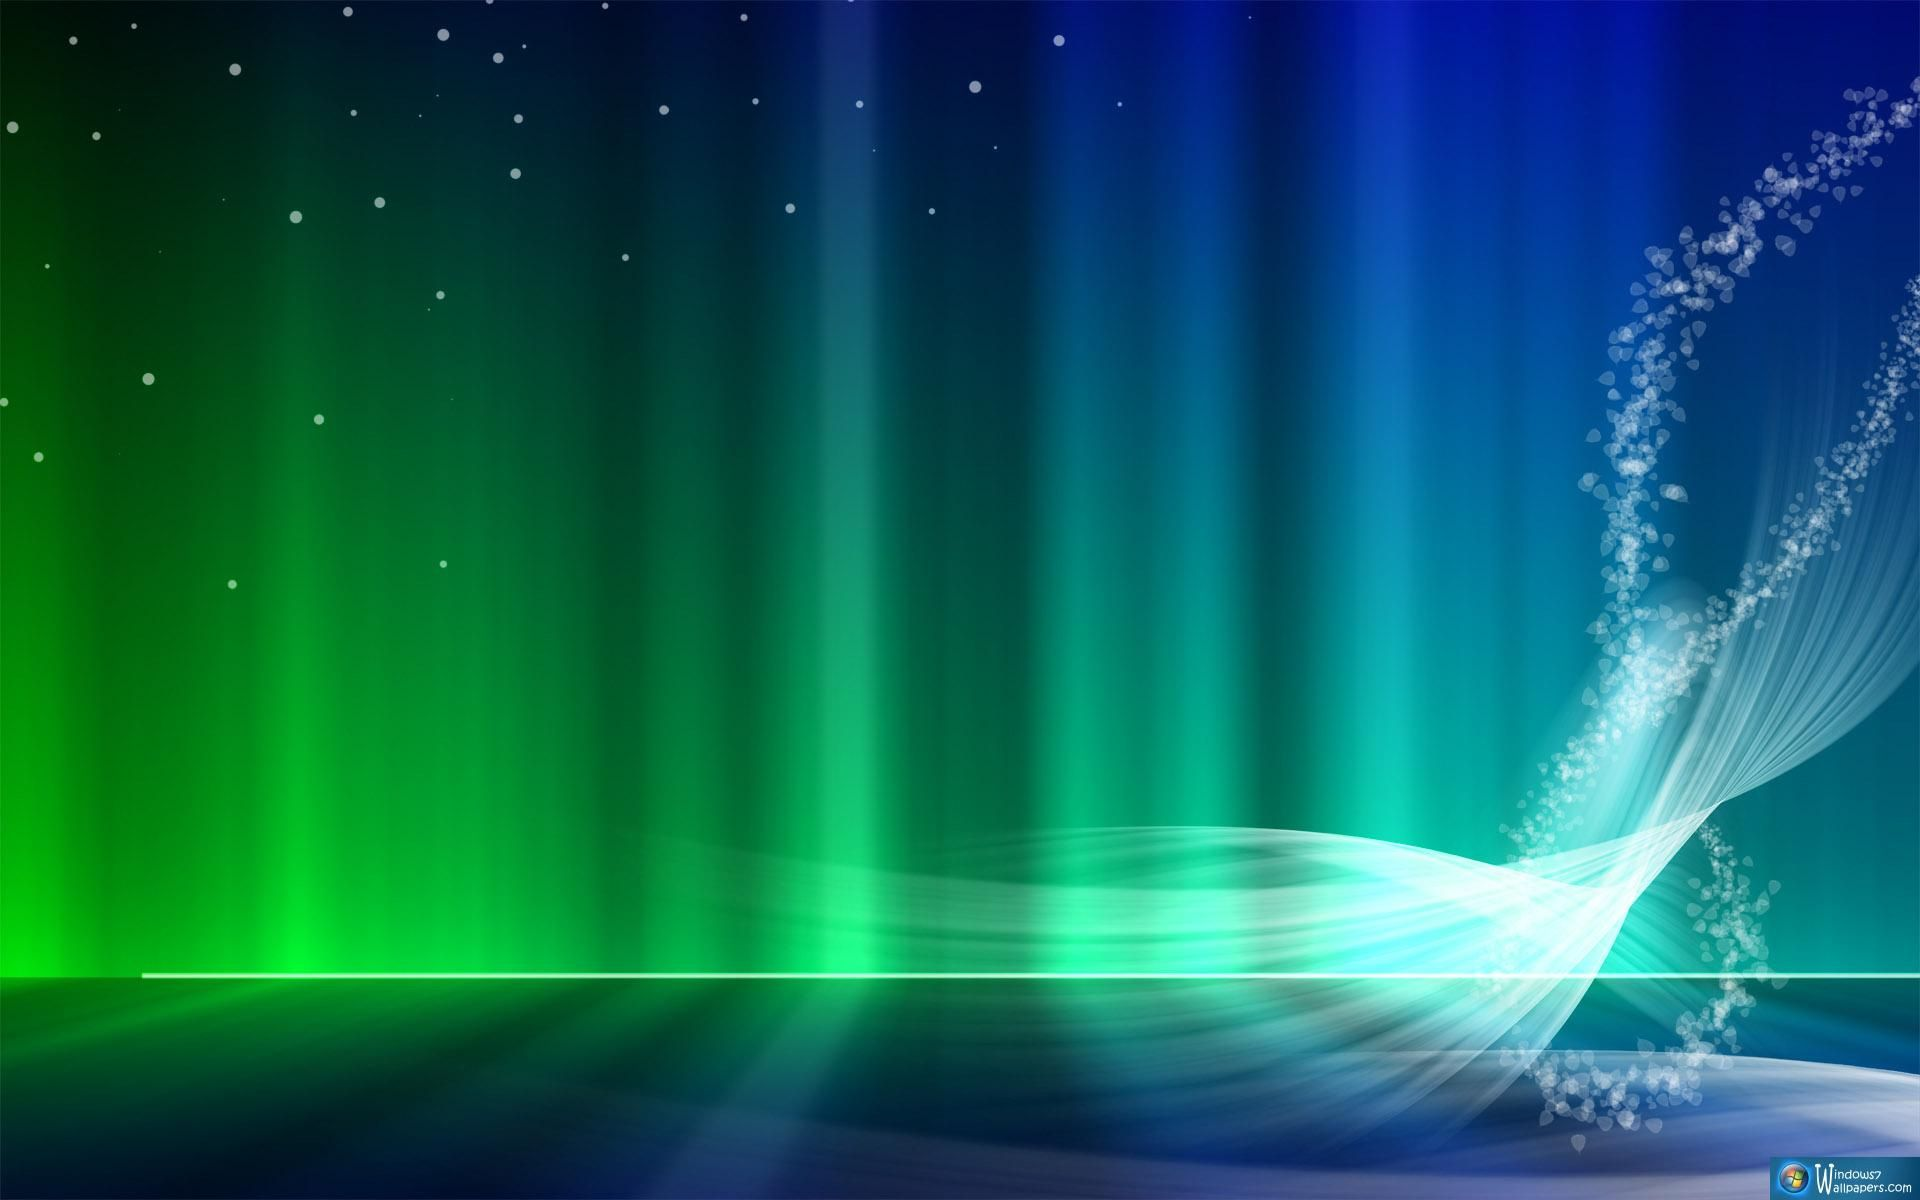 Hd wallpaper windows 7 - Windows 7 Background Picture Wallpaper Hd Desktop Wallpaper Hd